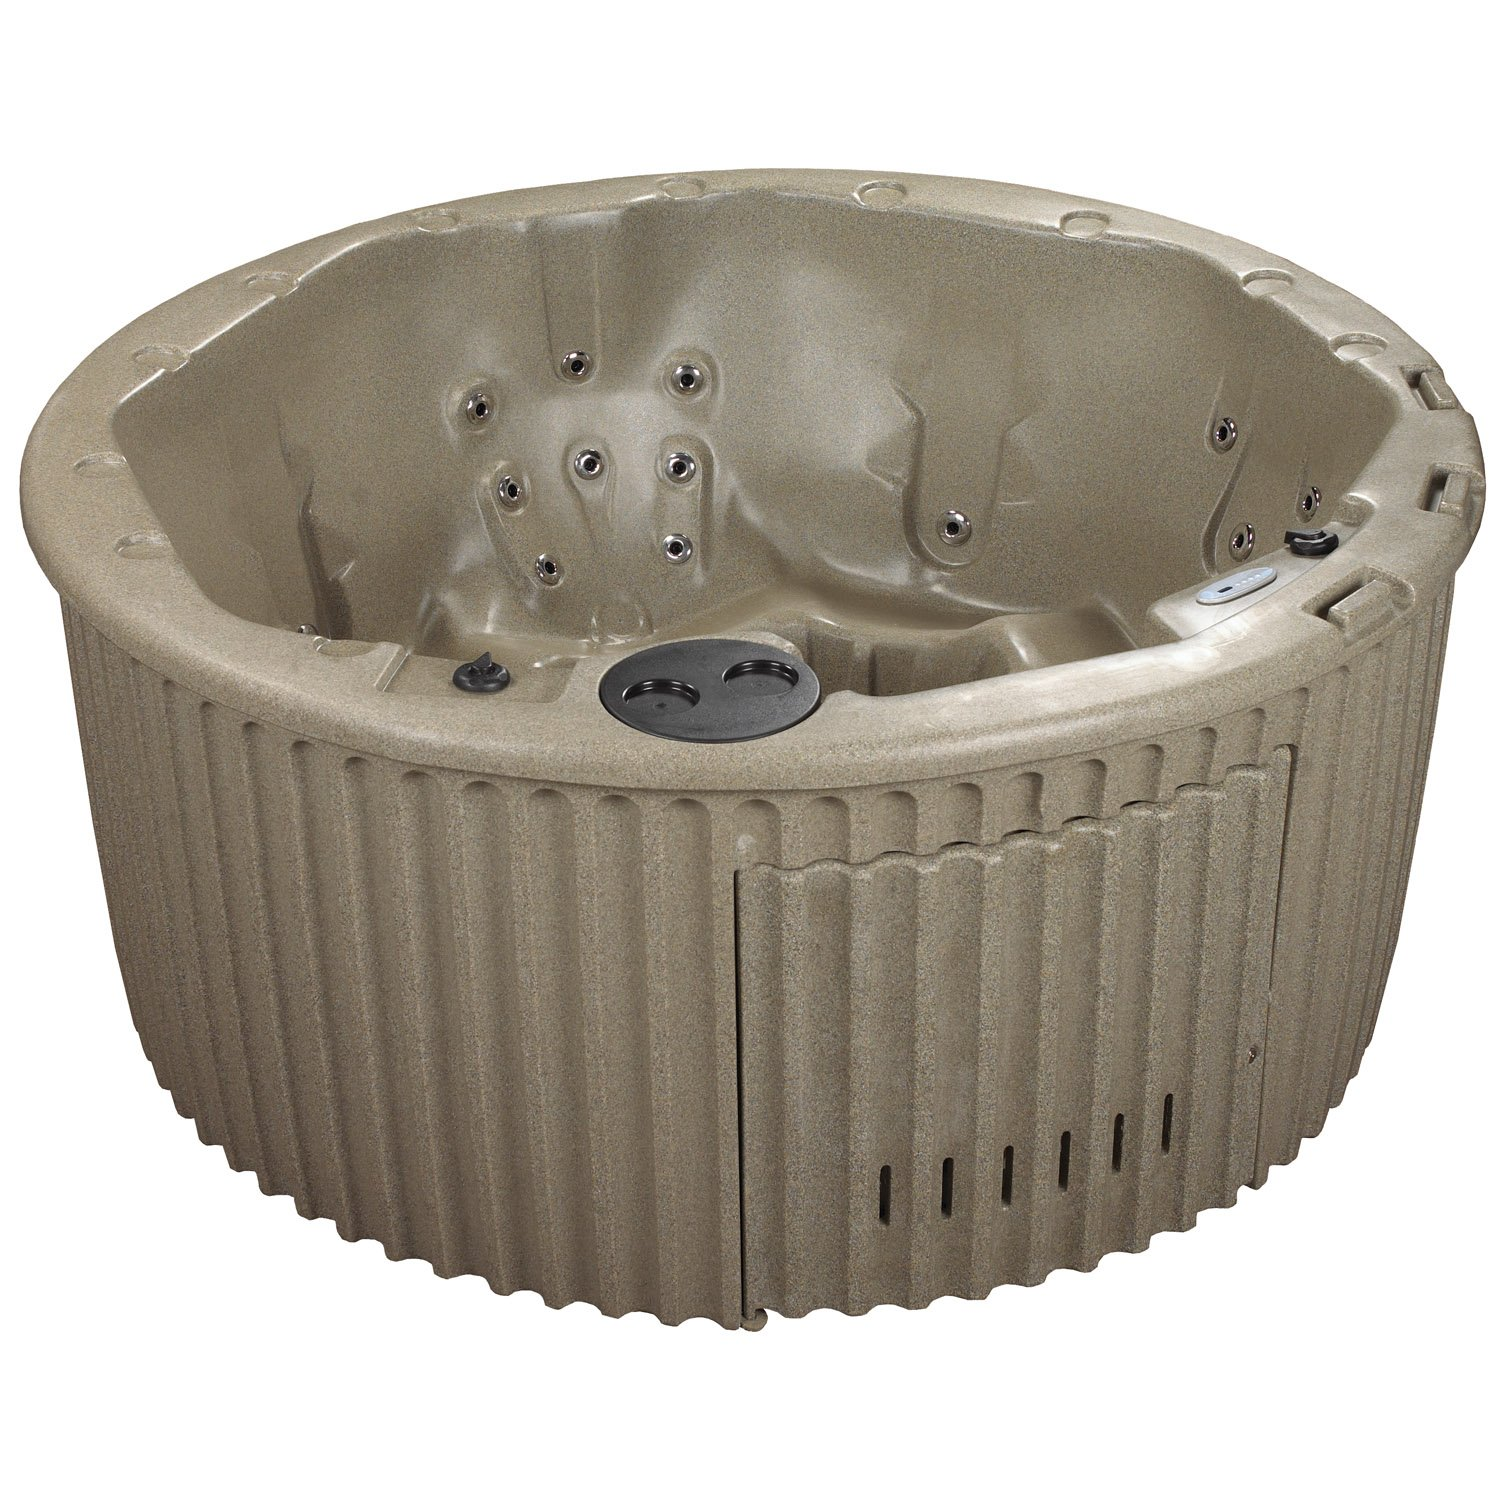 1.Essential 20-Jet Arbor Hot Tub